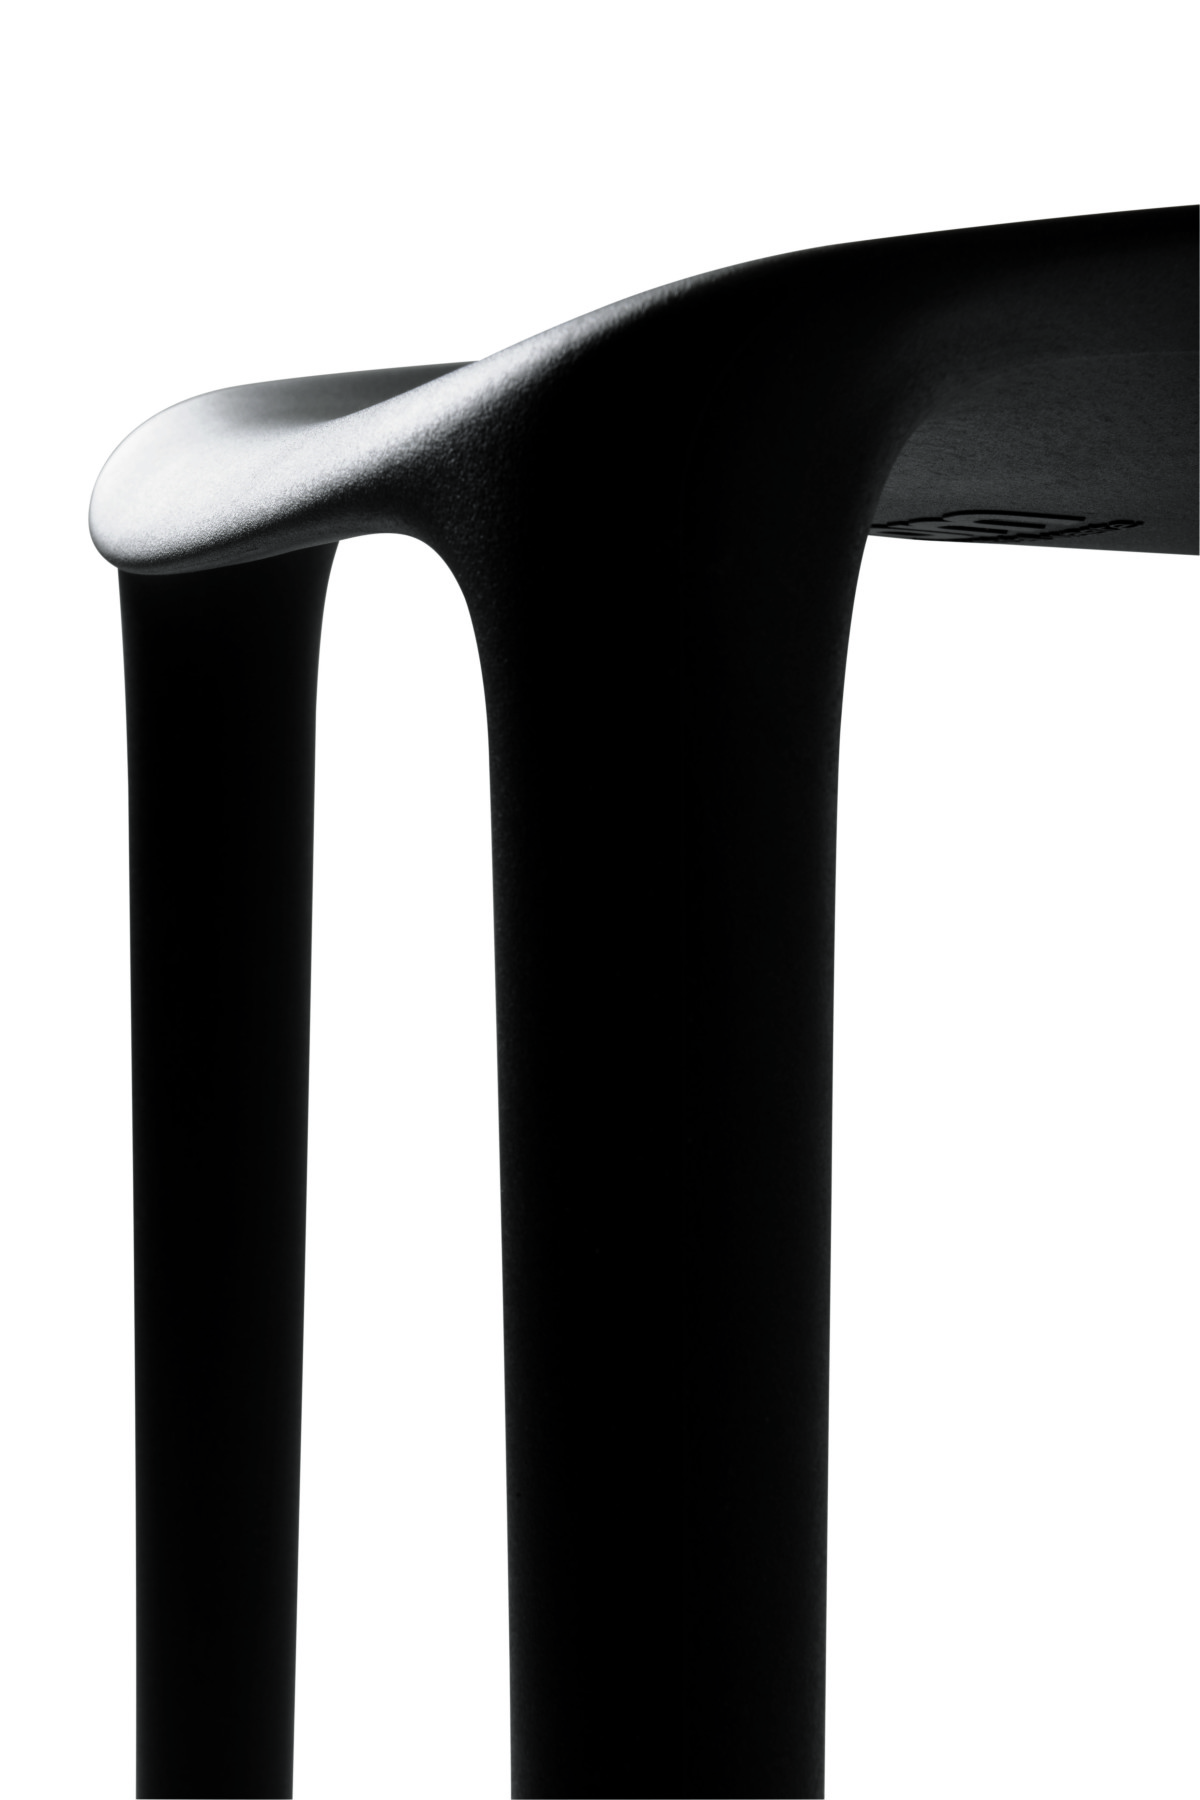 Emeco S Starck Stool Is Colorful Sustainable Fine